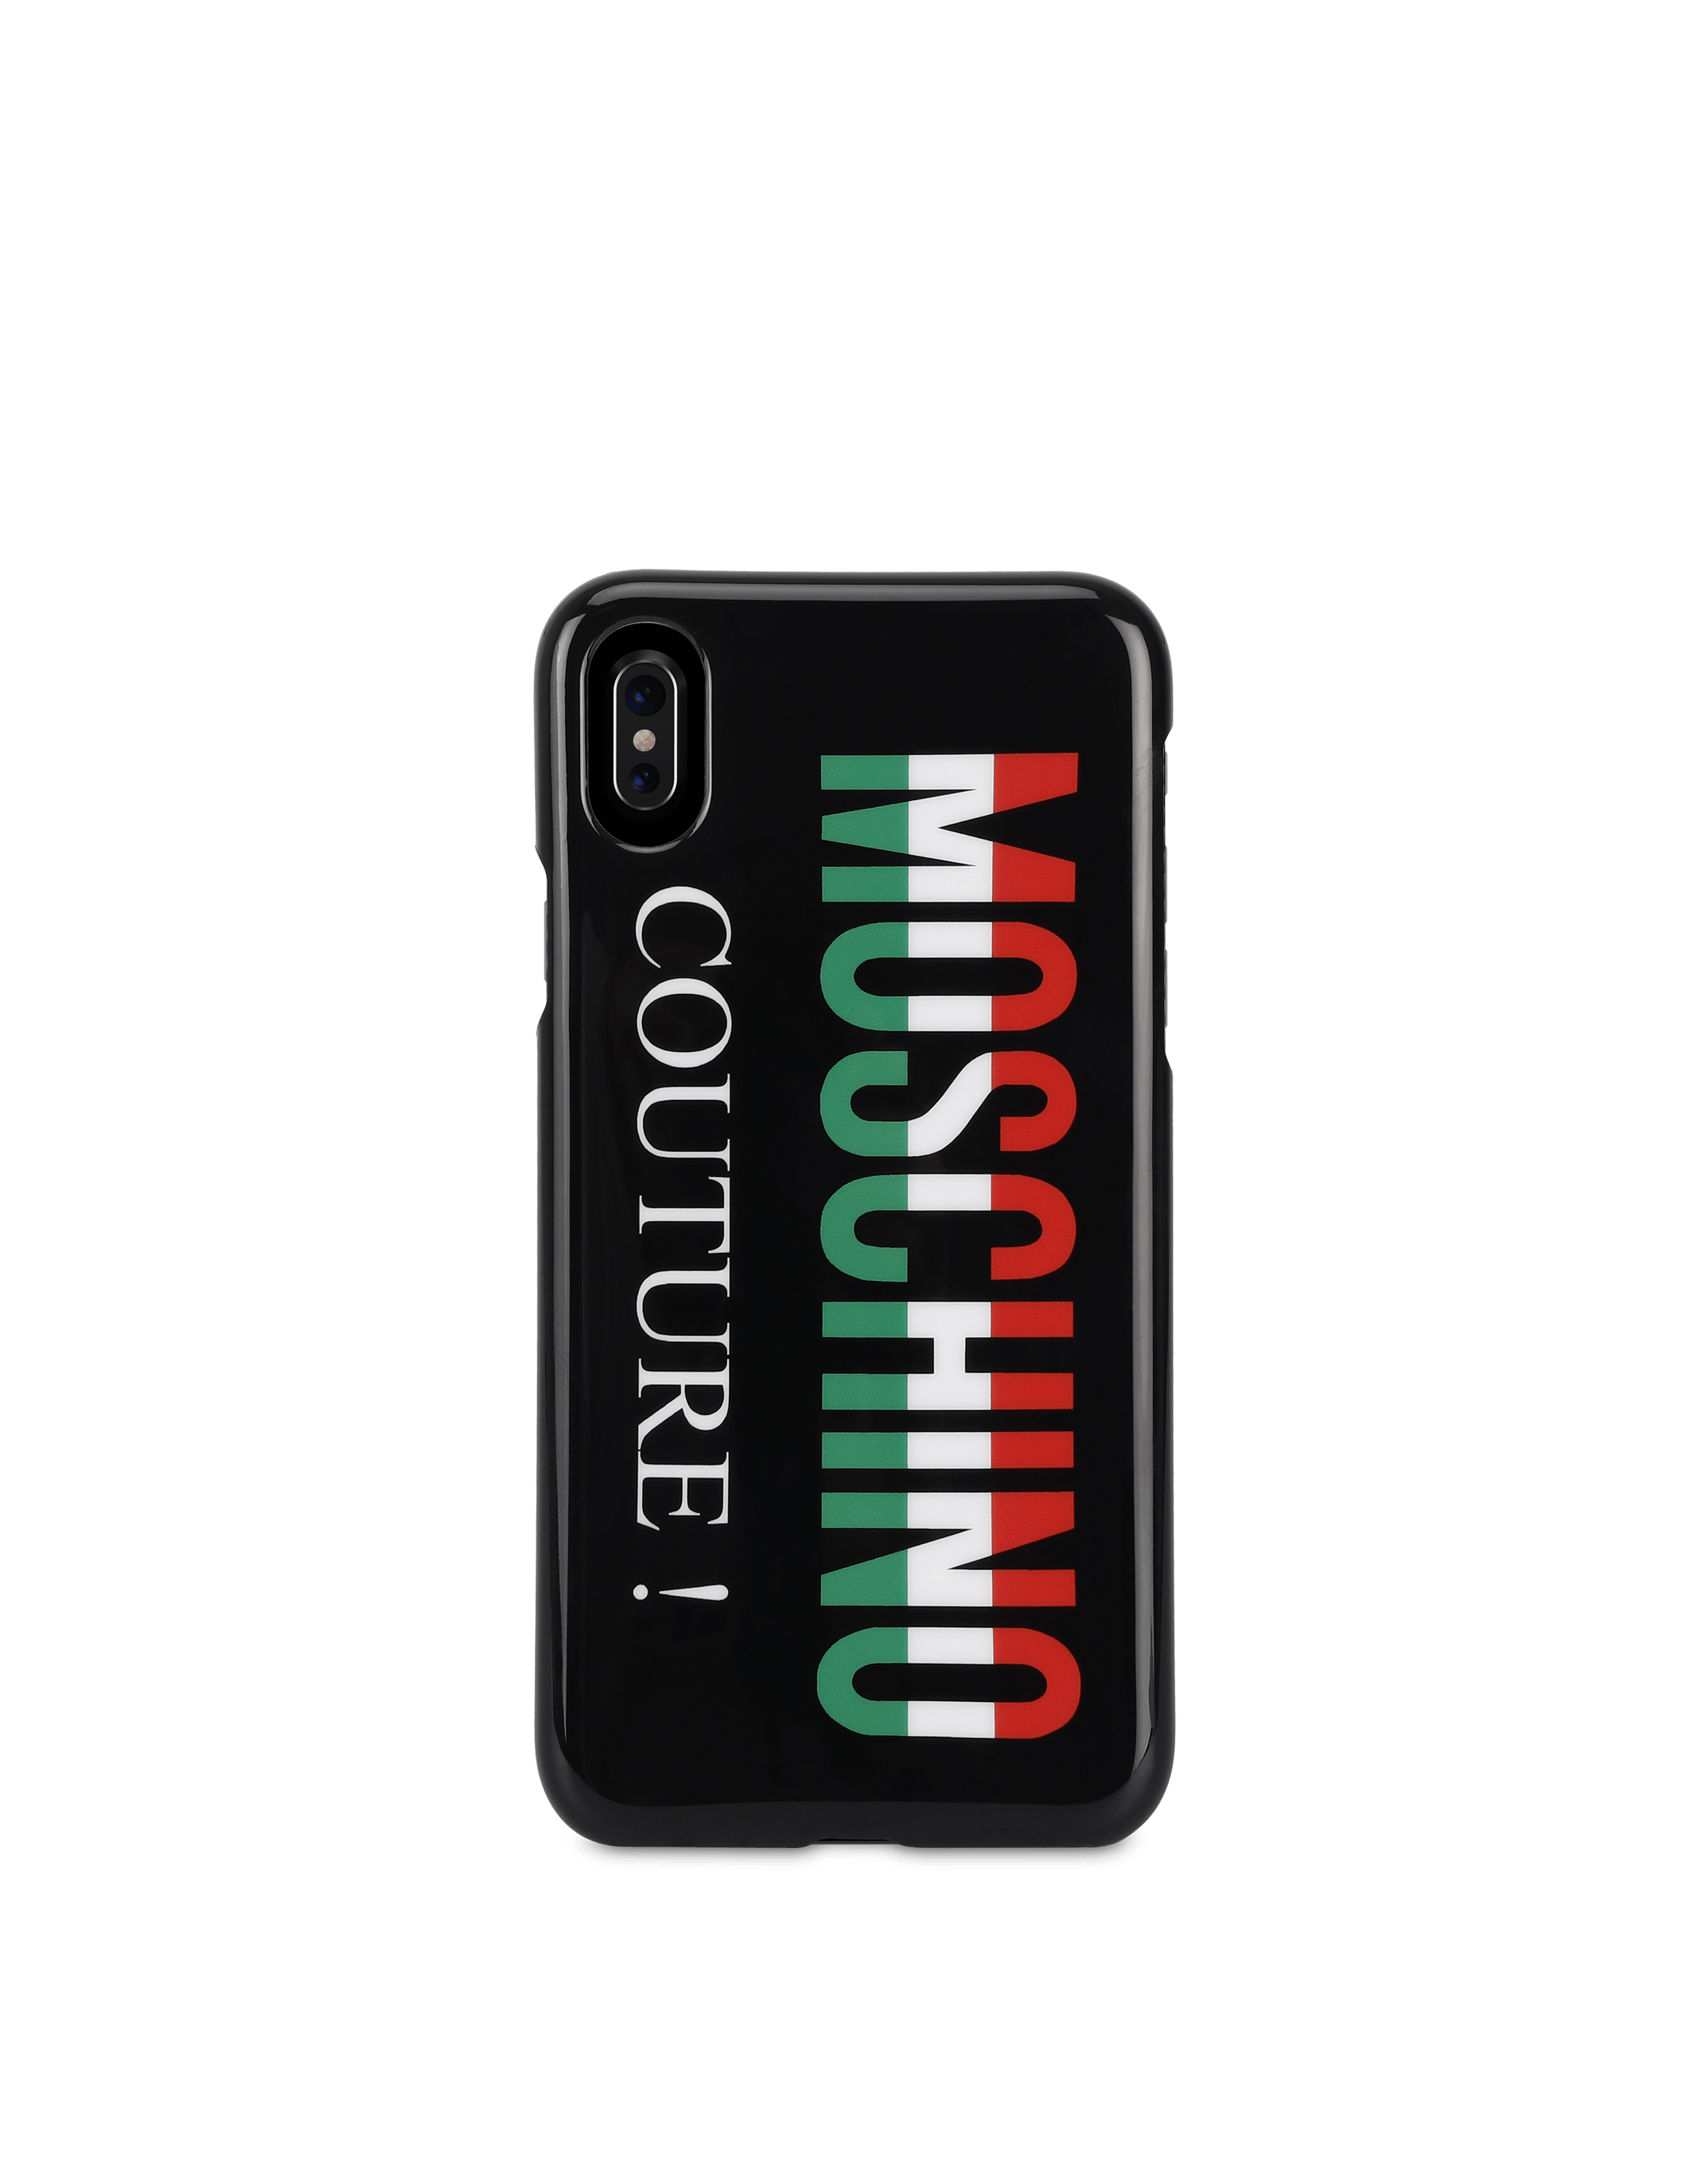 buy online 3855d 719ef Iphone X cover with tricolour logo